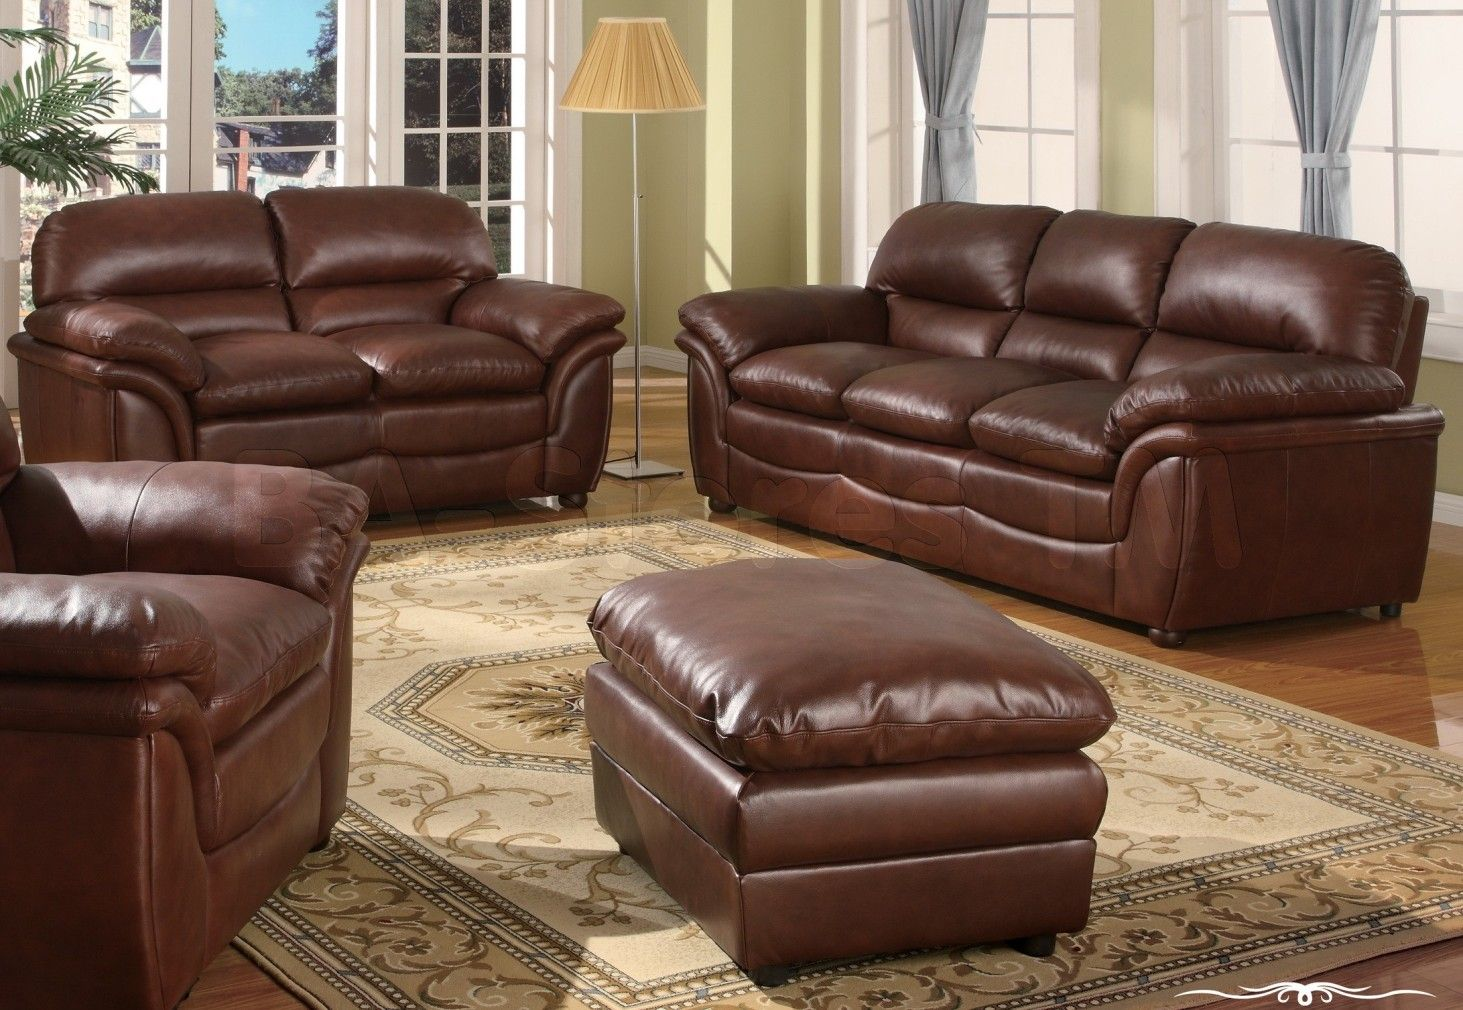 2018 Studded Leather Sofas Add A Timeless Beauty And Comfort